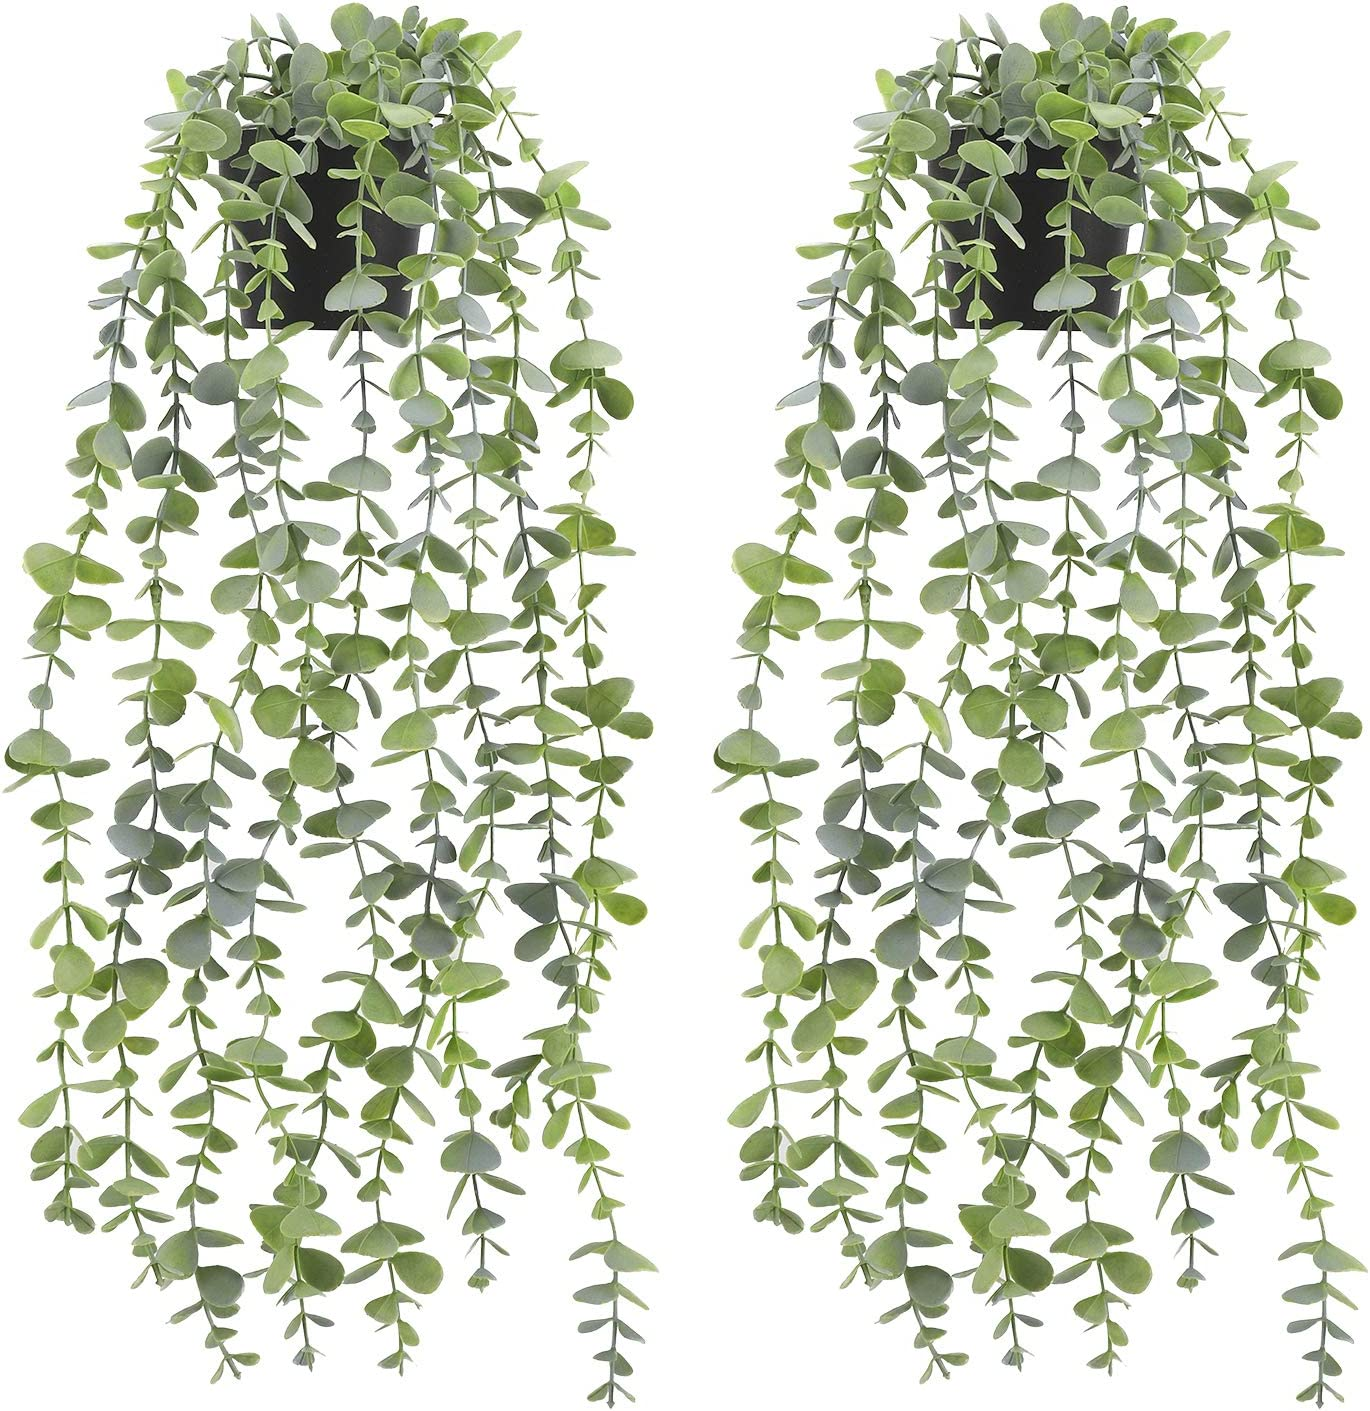 Fake Plants Artificial Hanging Plants - Fake Eucalyptus Plants Potted Faux Greenery Vines for Home Desk Decor, Set of 2